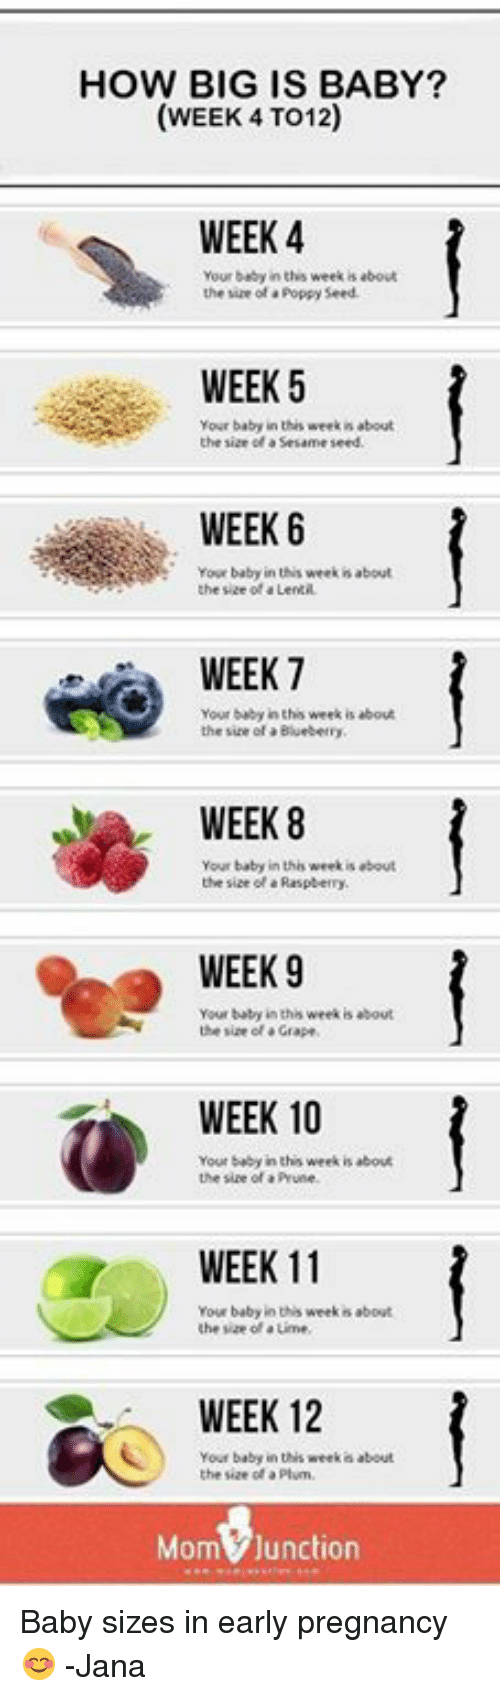 HOW BIG IS BABY? WEEK 4 TO12 WEEK 4 Your Beby in This Week Is About